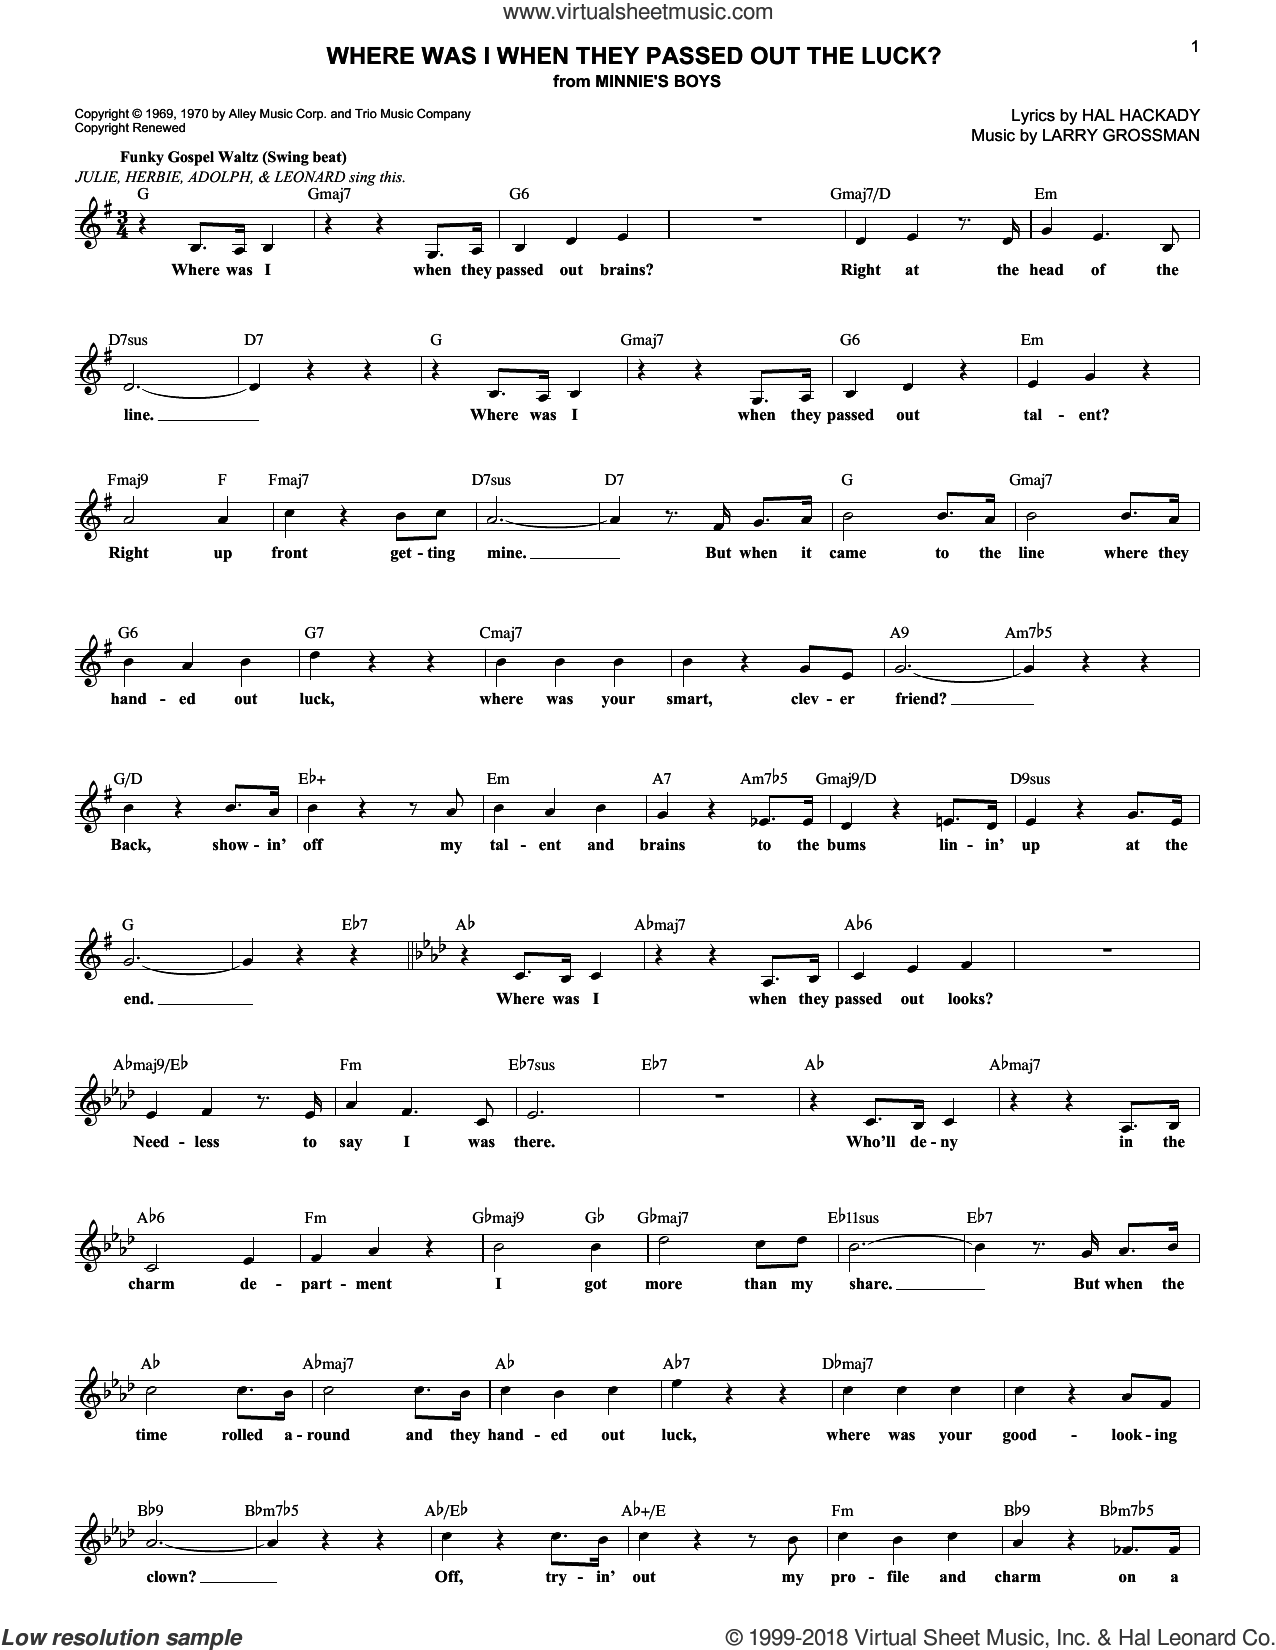 Where Was I When They Passed Out The Luck? sheet music for voice and other instruments (fake book) by Hal Clayton Hackady and Larry Grossman, intermediate skill level